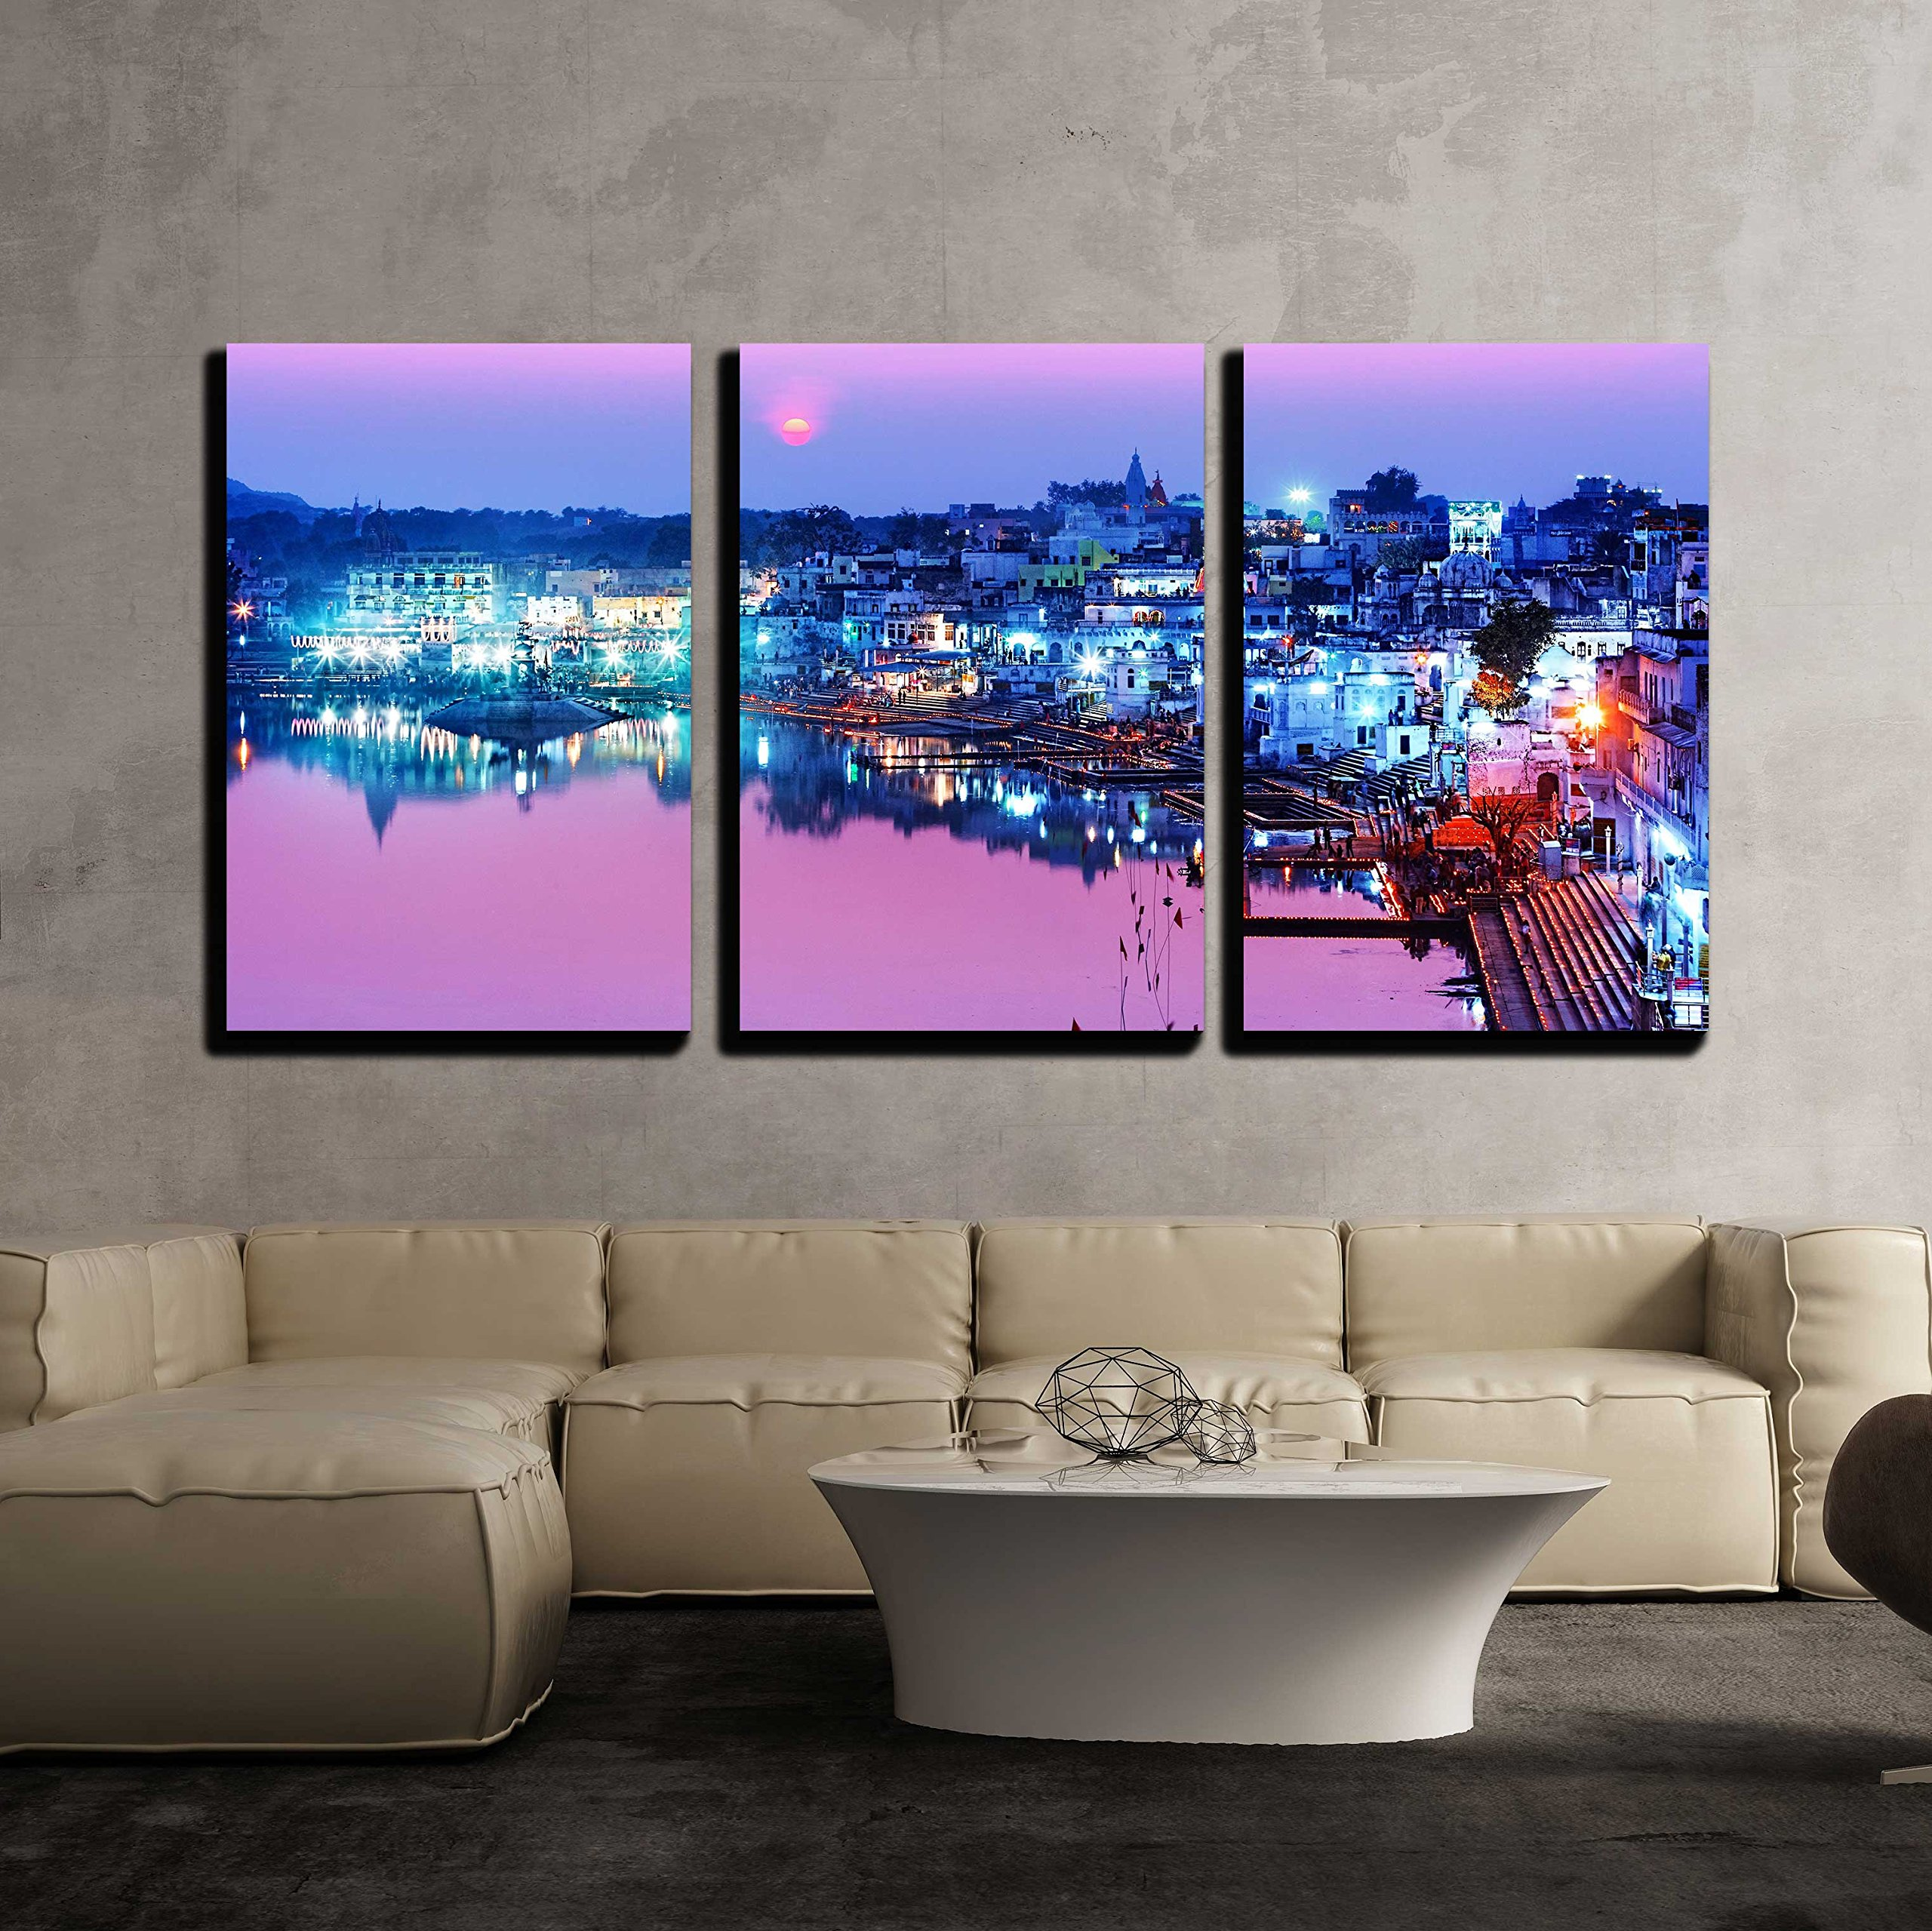 wall26 - 3 Piece Canvas Wall Art - Pushkar Lake at Night Pushkar, Rajasthan, India, Asia - Modern Home Decor Stretched and Framed Ready to Hang - 16''x24''x3 Panels